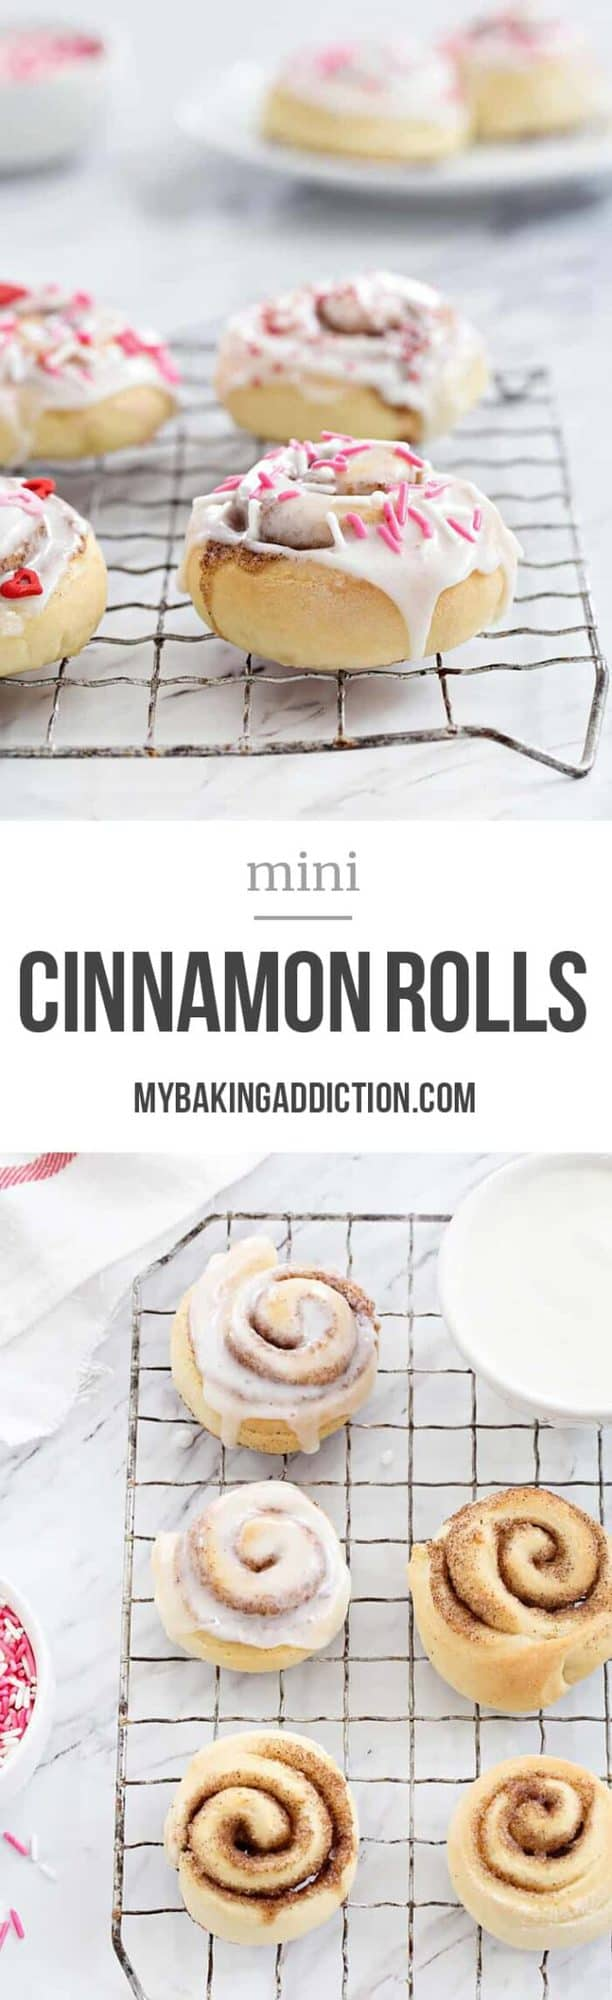 Mini Cinnamon Rolls are a fun and delicious way to celebrate any day! A sweet glaze and colorful sprinkles makes them extra special!